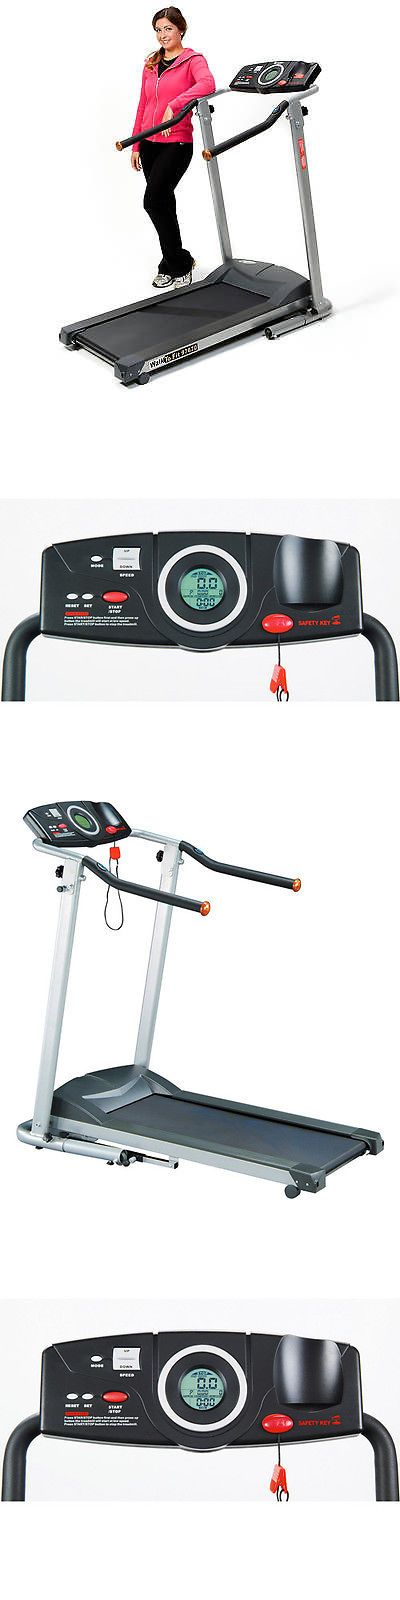 Treadmills 15280: Exerpeutic 350 Heavy Duty Fitness Walking Electric Treadmill -> BUY IT NOW ONLY: $325.09 on eBay!